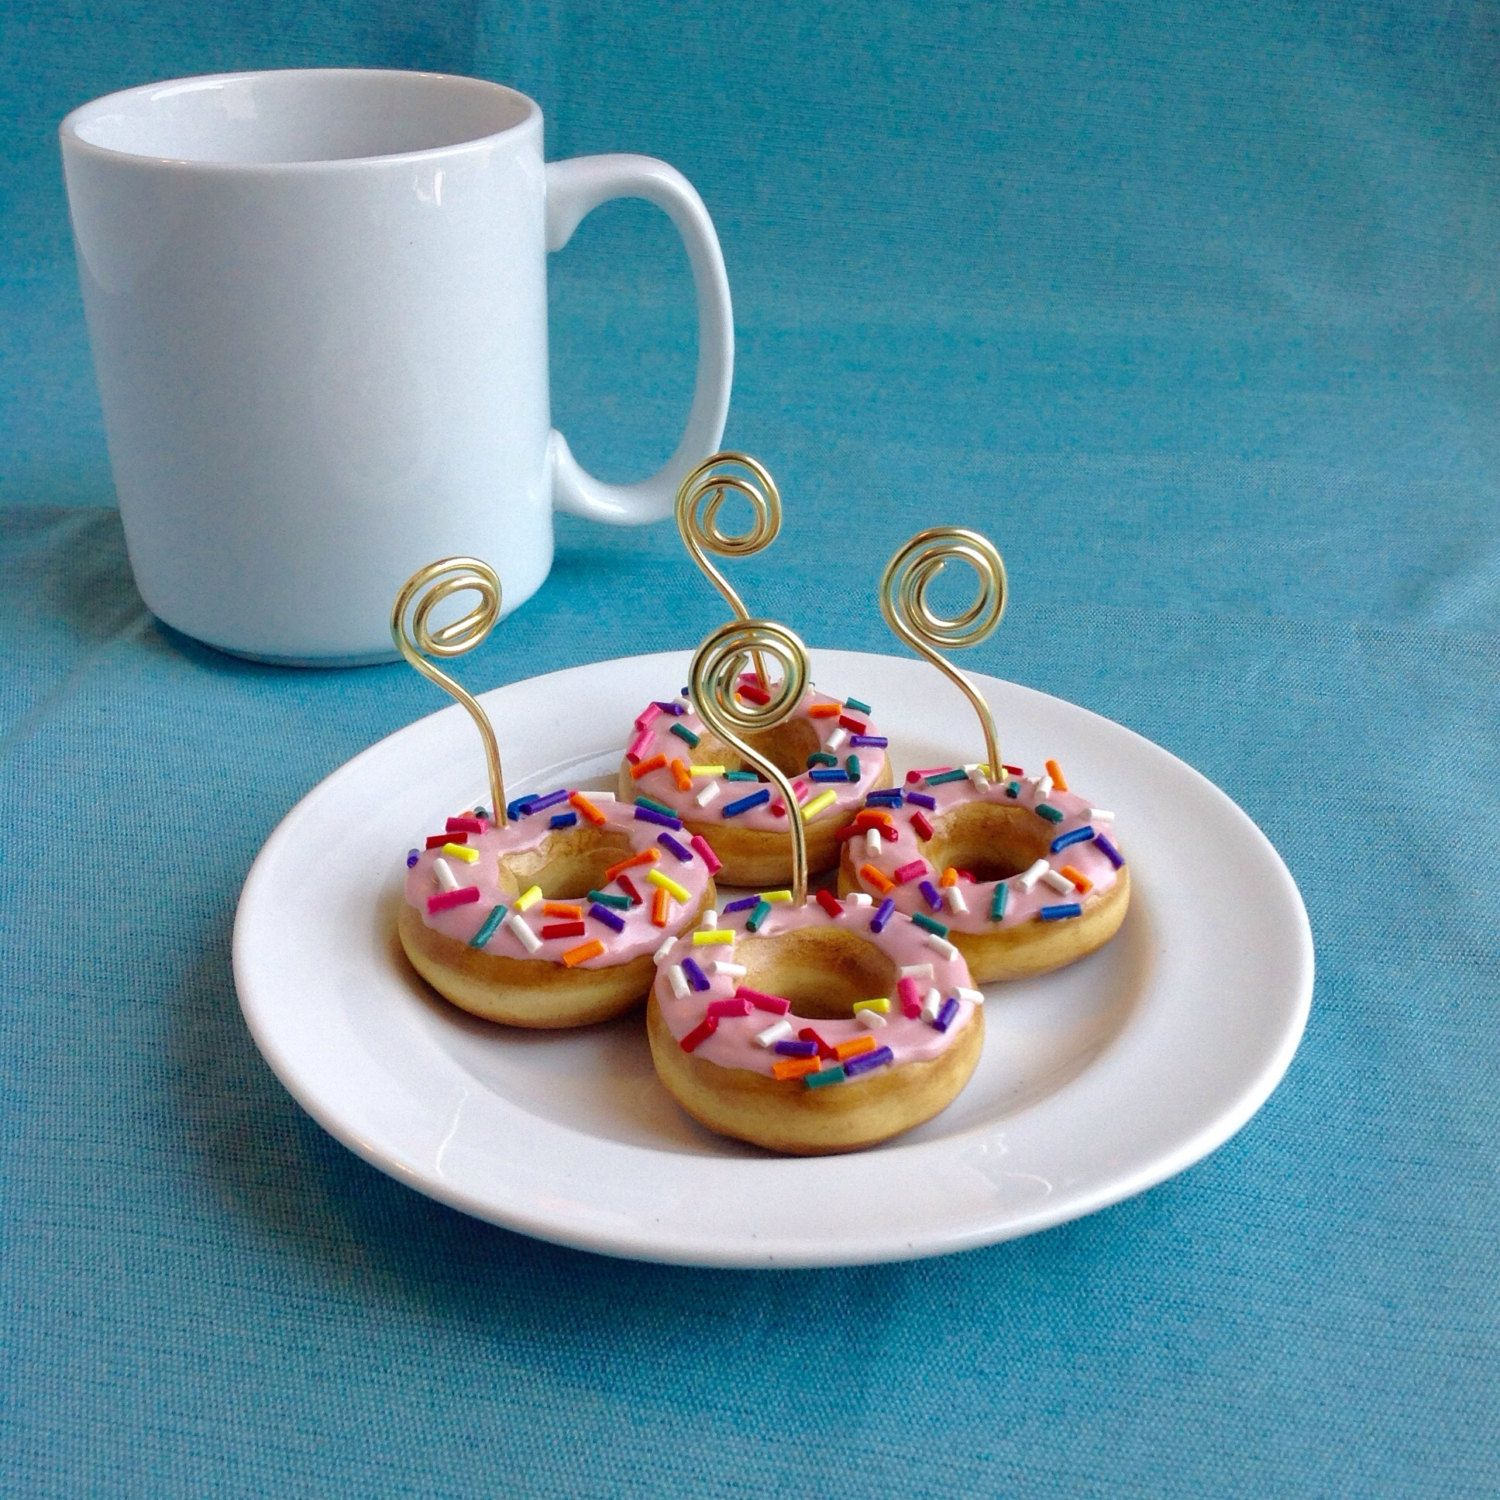 Donut Place Card Holders Coffee Shop Decoration Icing Sprinkles